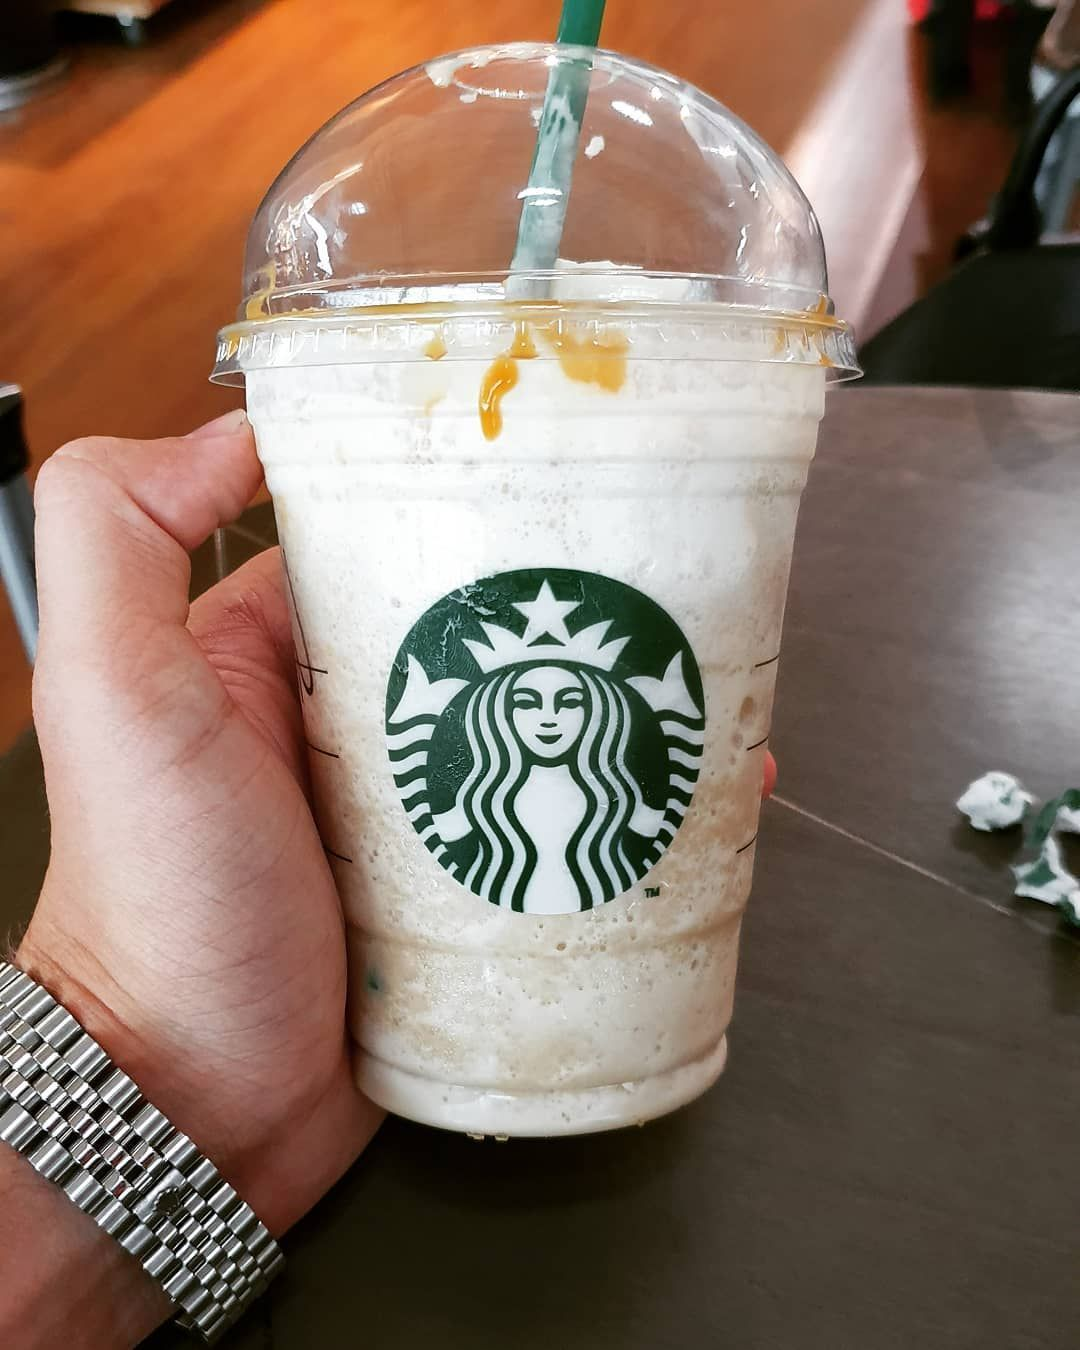 I tryed Starbucks Frappuccino for the first time last week and I must say it was pretty damn delicious I tryed Starbucks Frappuccino for the first time last week and I must say it was pretty damn delicious #starbucksfrappuccino